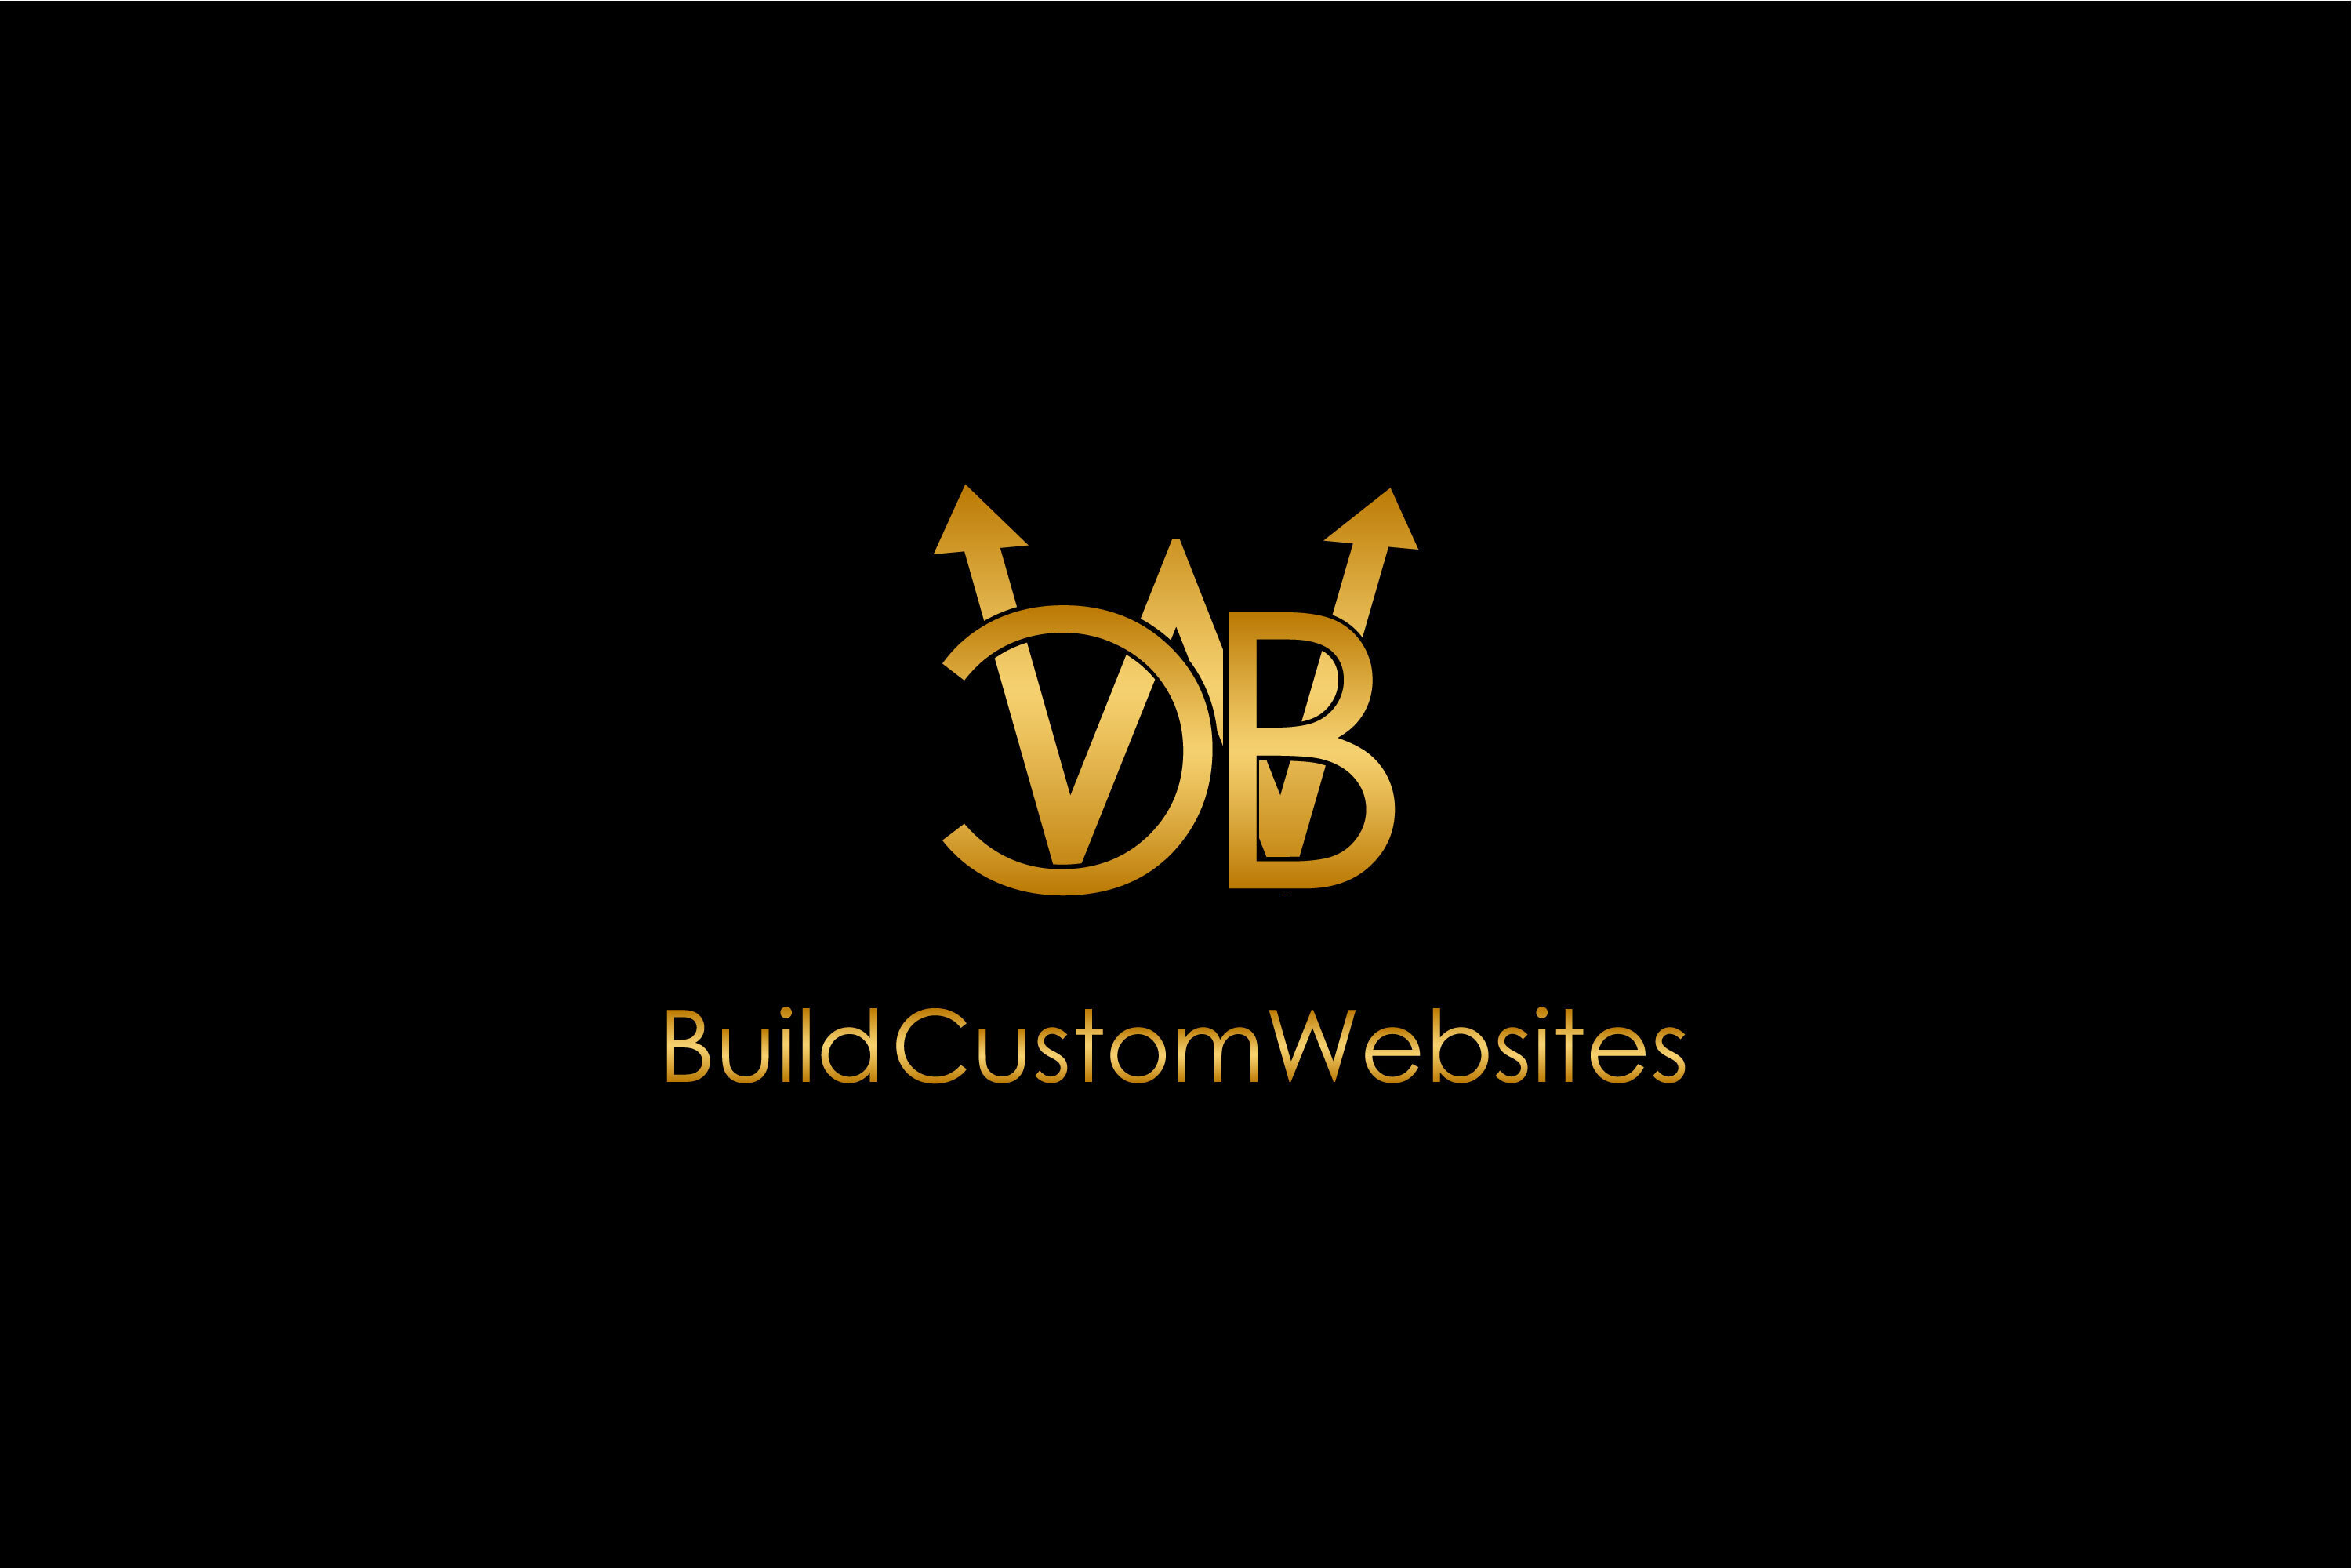 BuildCustomWebsites.com